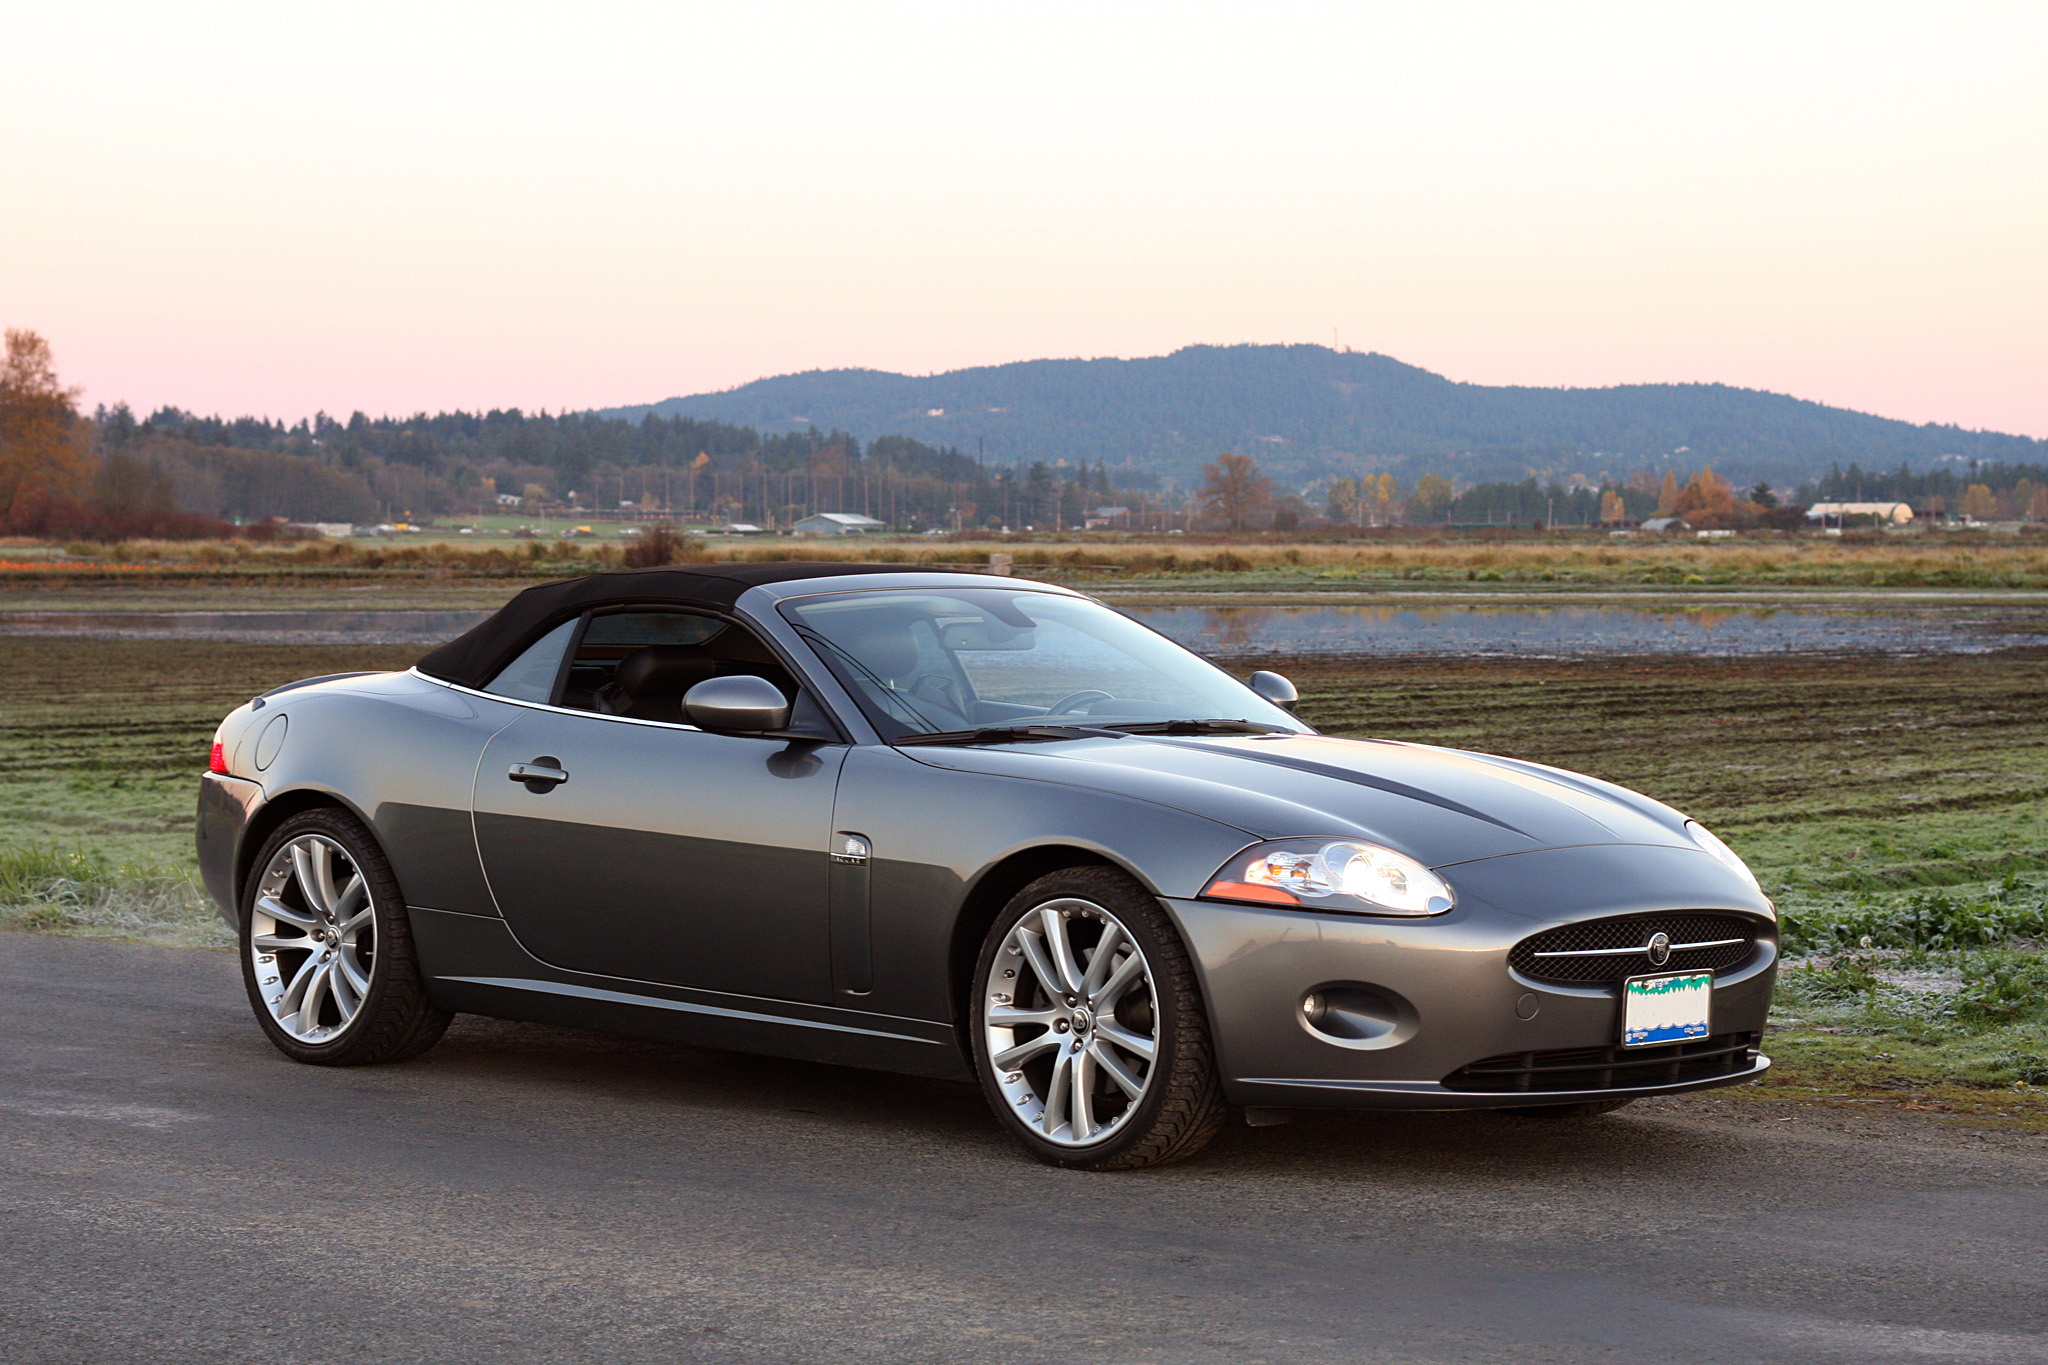 Convertible Top Raises Or Lowers In 18 Seconds.  Jaguar 4.2 Litre 300 Hp  V8  6 Speed Automatic Transmission With Paddle Shifters.